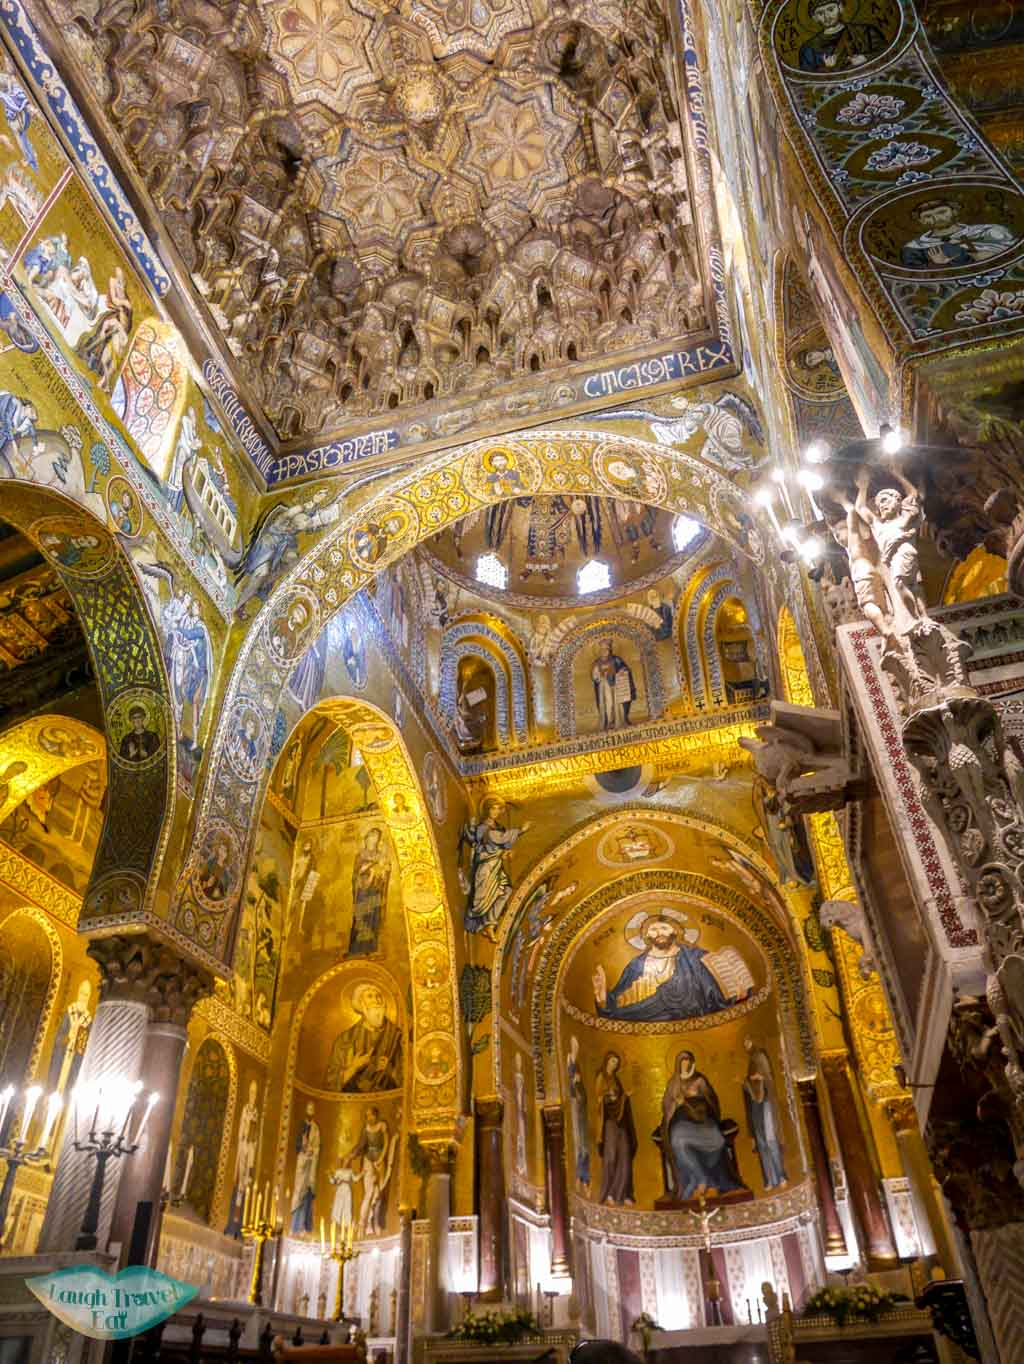 The richly decorated Chapel Palatina in Palermo, famous for its golden mosaic | Laugh Travel Eat